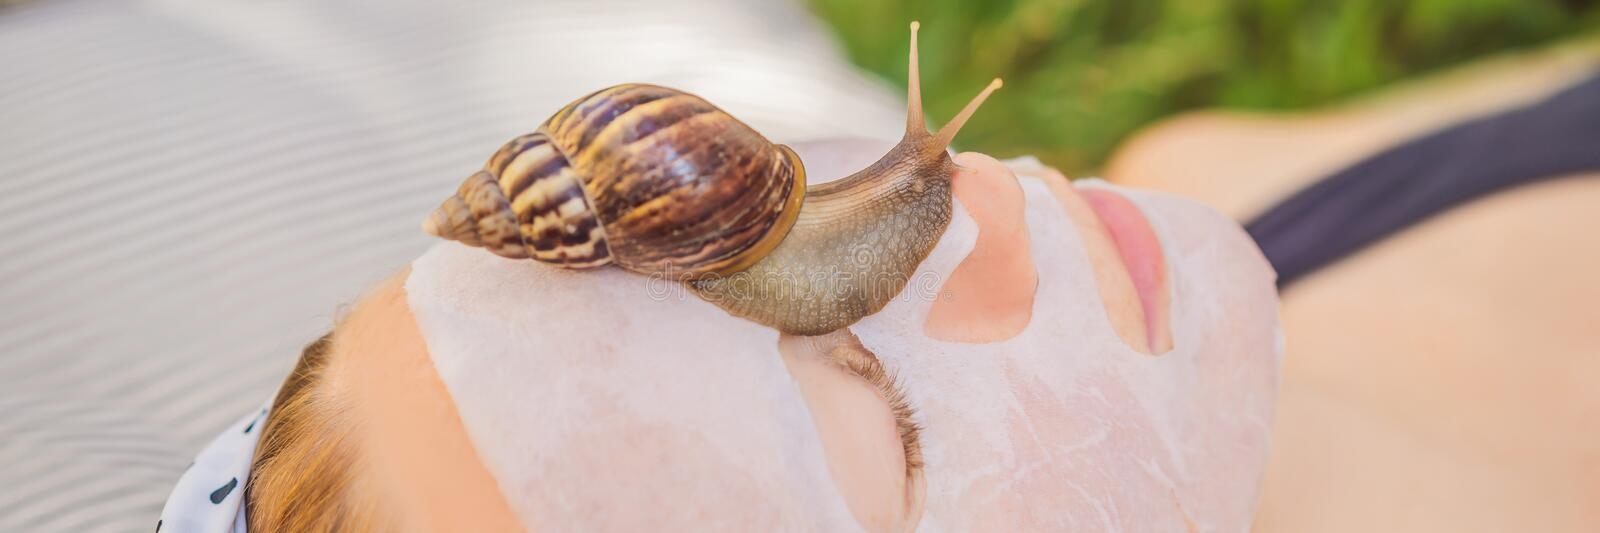 Young woman makes a face mask with snail mucus. Snail crawling on a face mask BANNER, LONG FORMAT. Young woman makes a face mask with snail mucus. Snail crawling royalty free stock photos